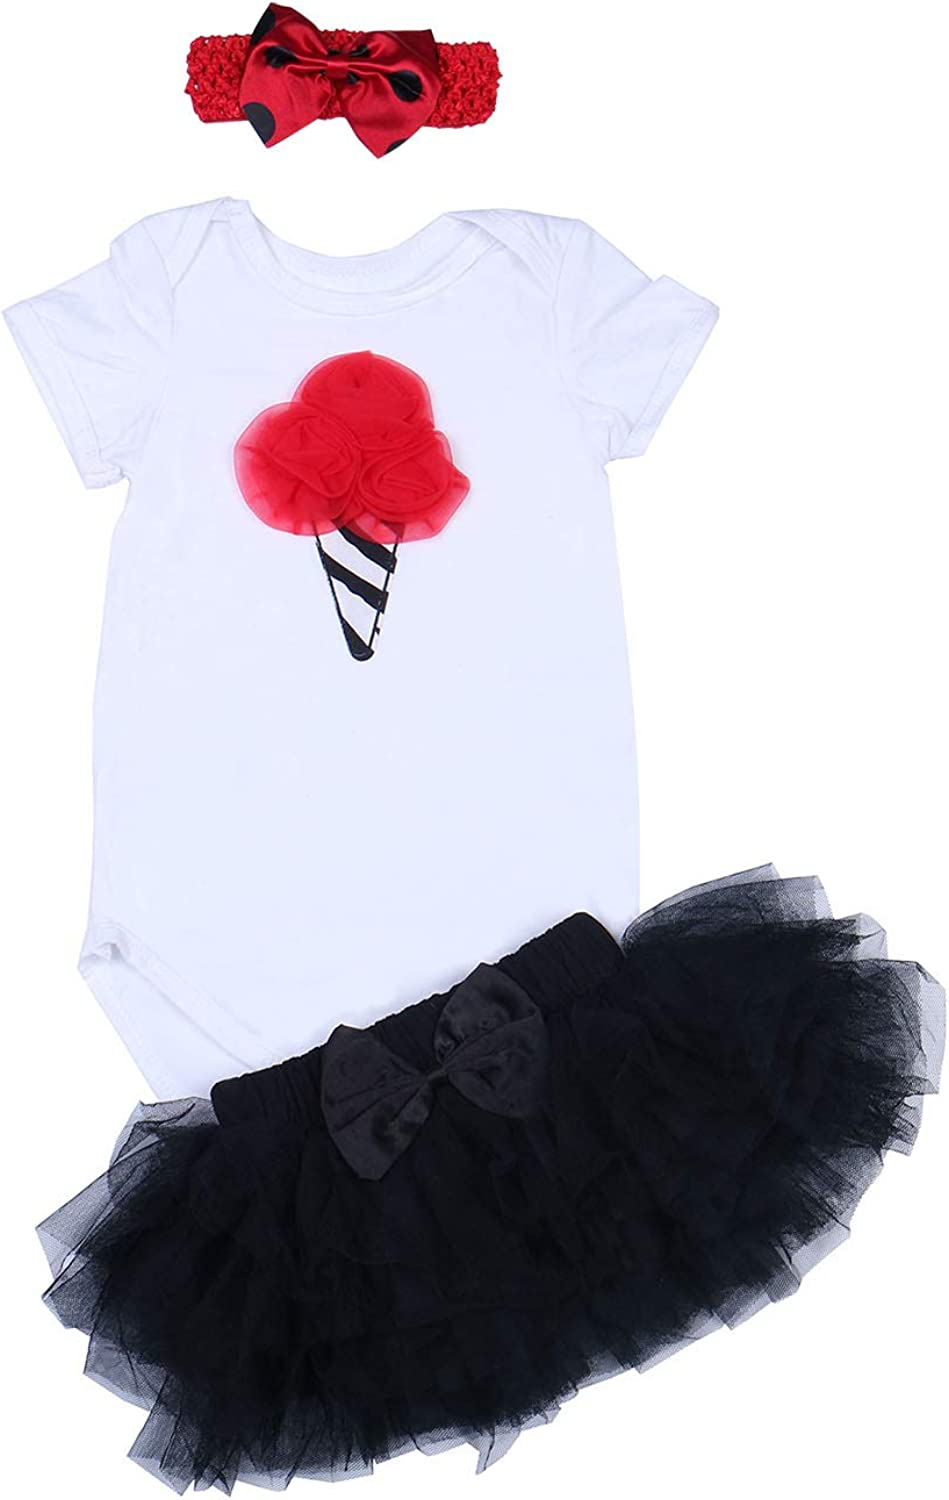 BABYPREG 3PCs Baby Girls 1st Birthday Tutu Dress Romper Skirt Headband Outfit